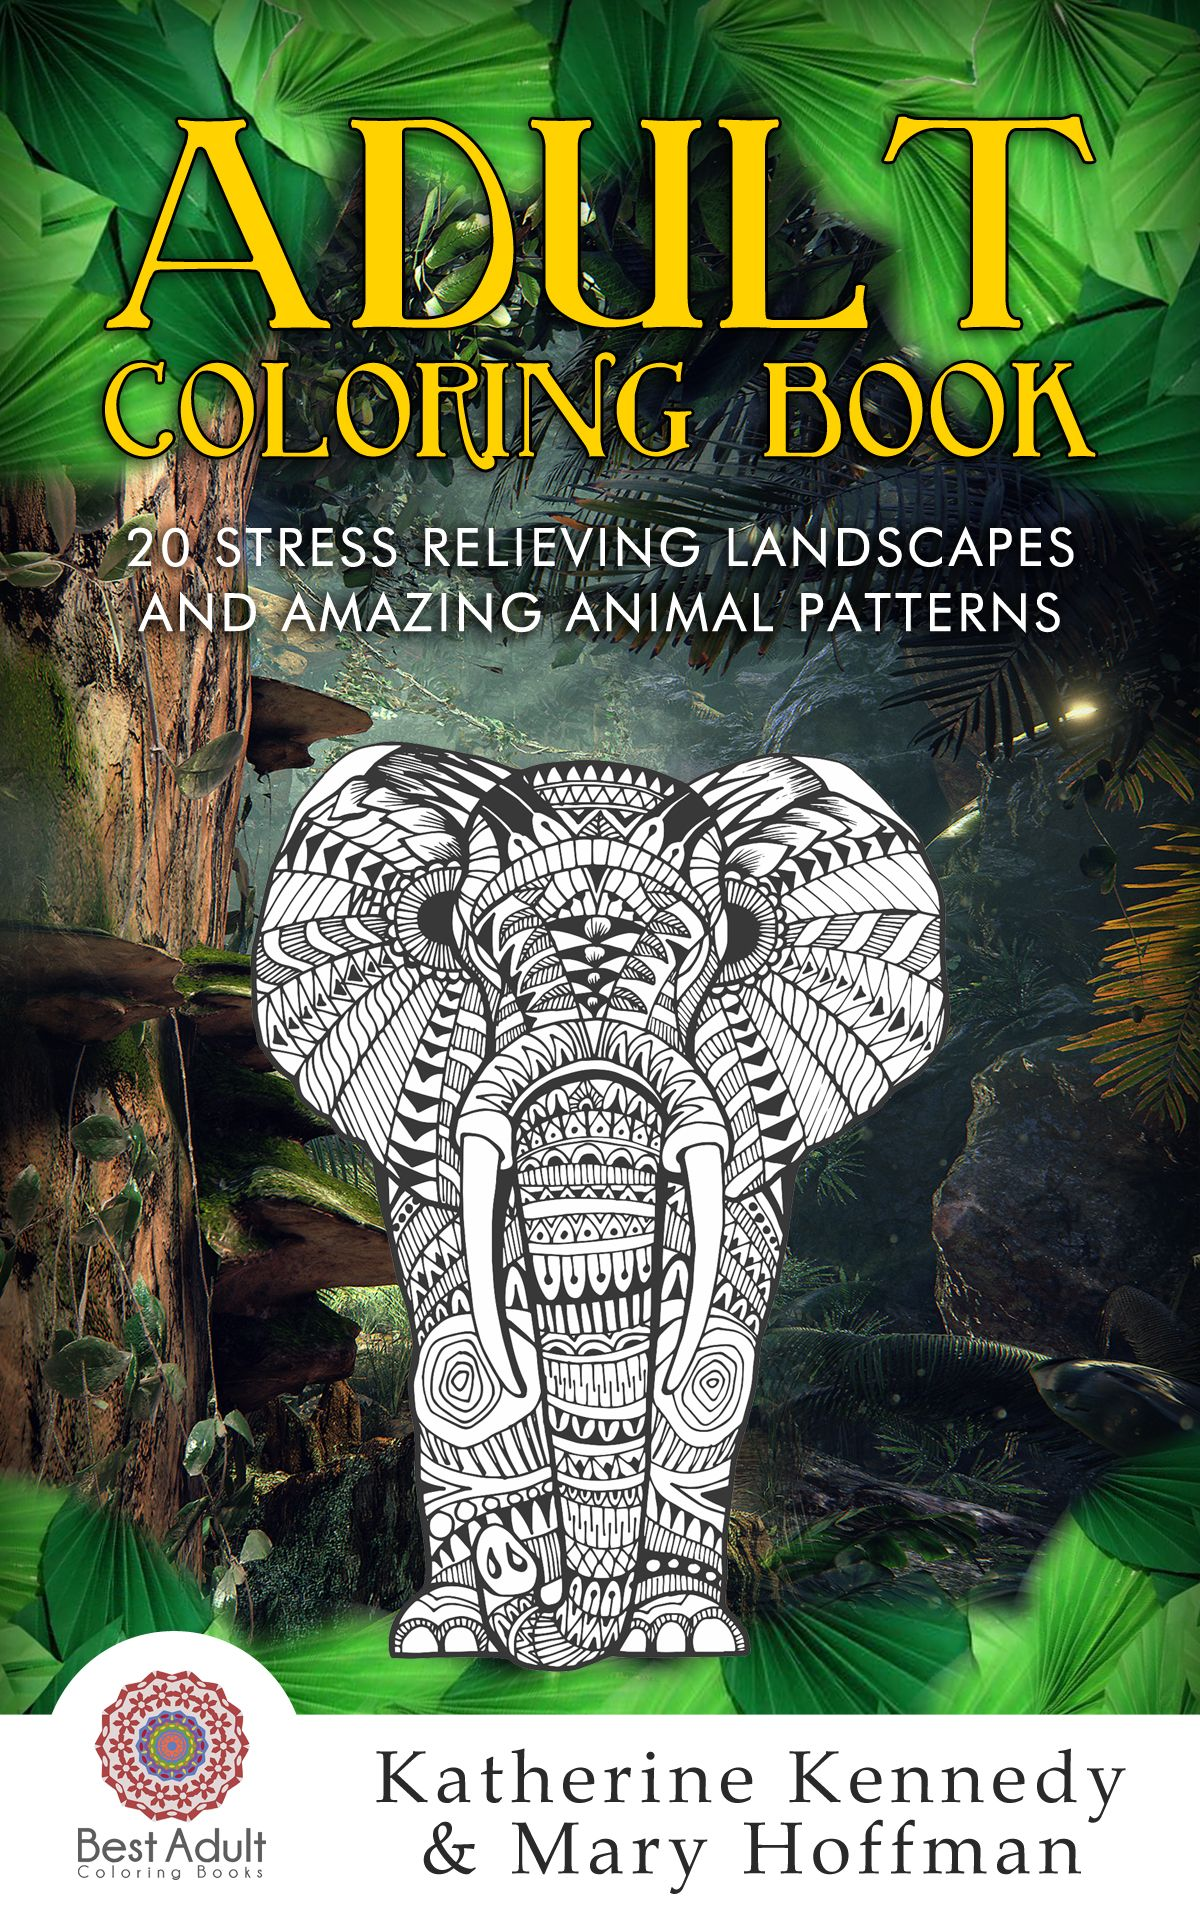 FREE ADULT COLORING BOOK Free Until August 30th Check Out Our Very First Adult Coloring Book Get The Kindle Edition To Pictures Or